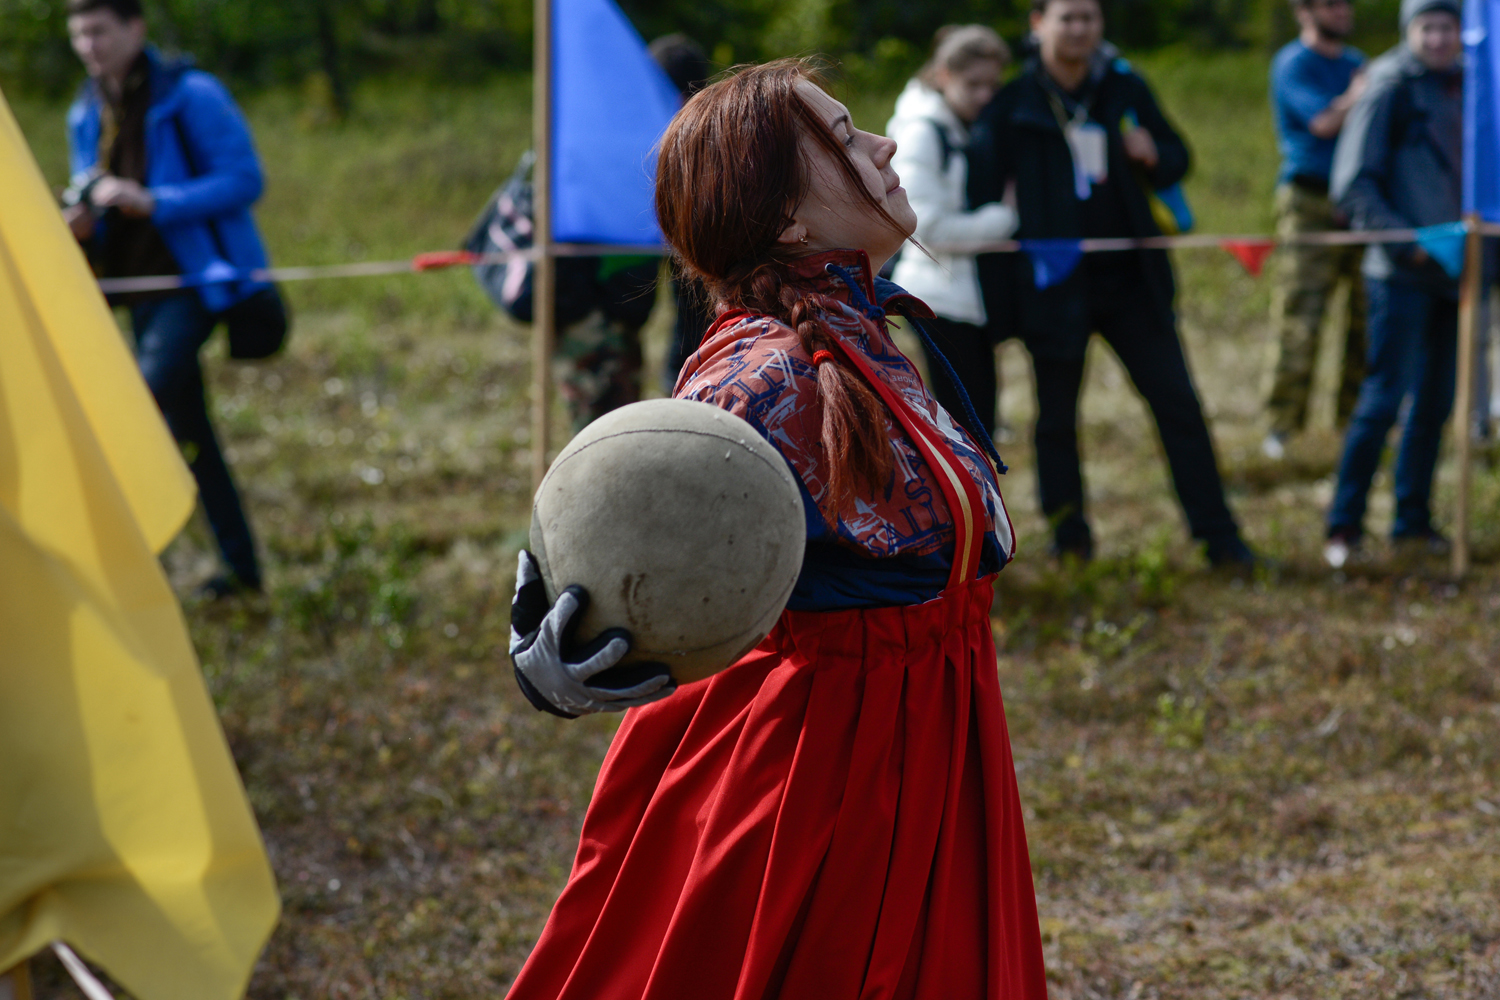 The ball in Saami football is sewn from reindeer skins and stuffed with deer hair or pieces of buckskin. It is quite heavy compared to a conventional soccer ball, but as ever players cannot use their hands, except the goalkeeper, of course.